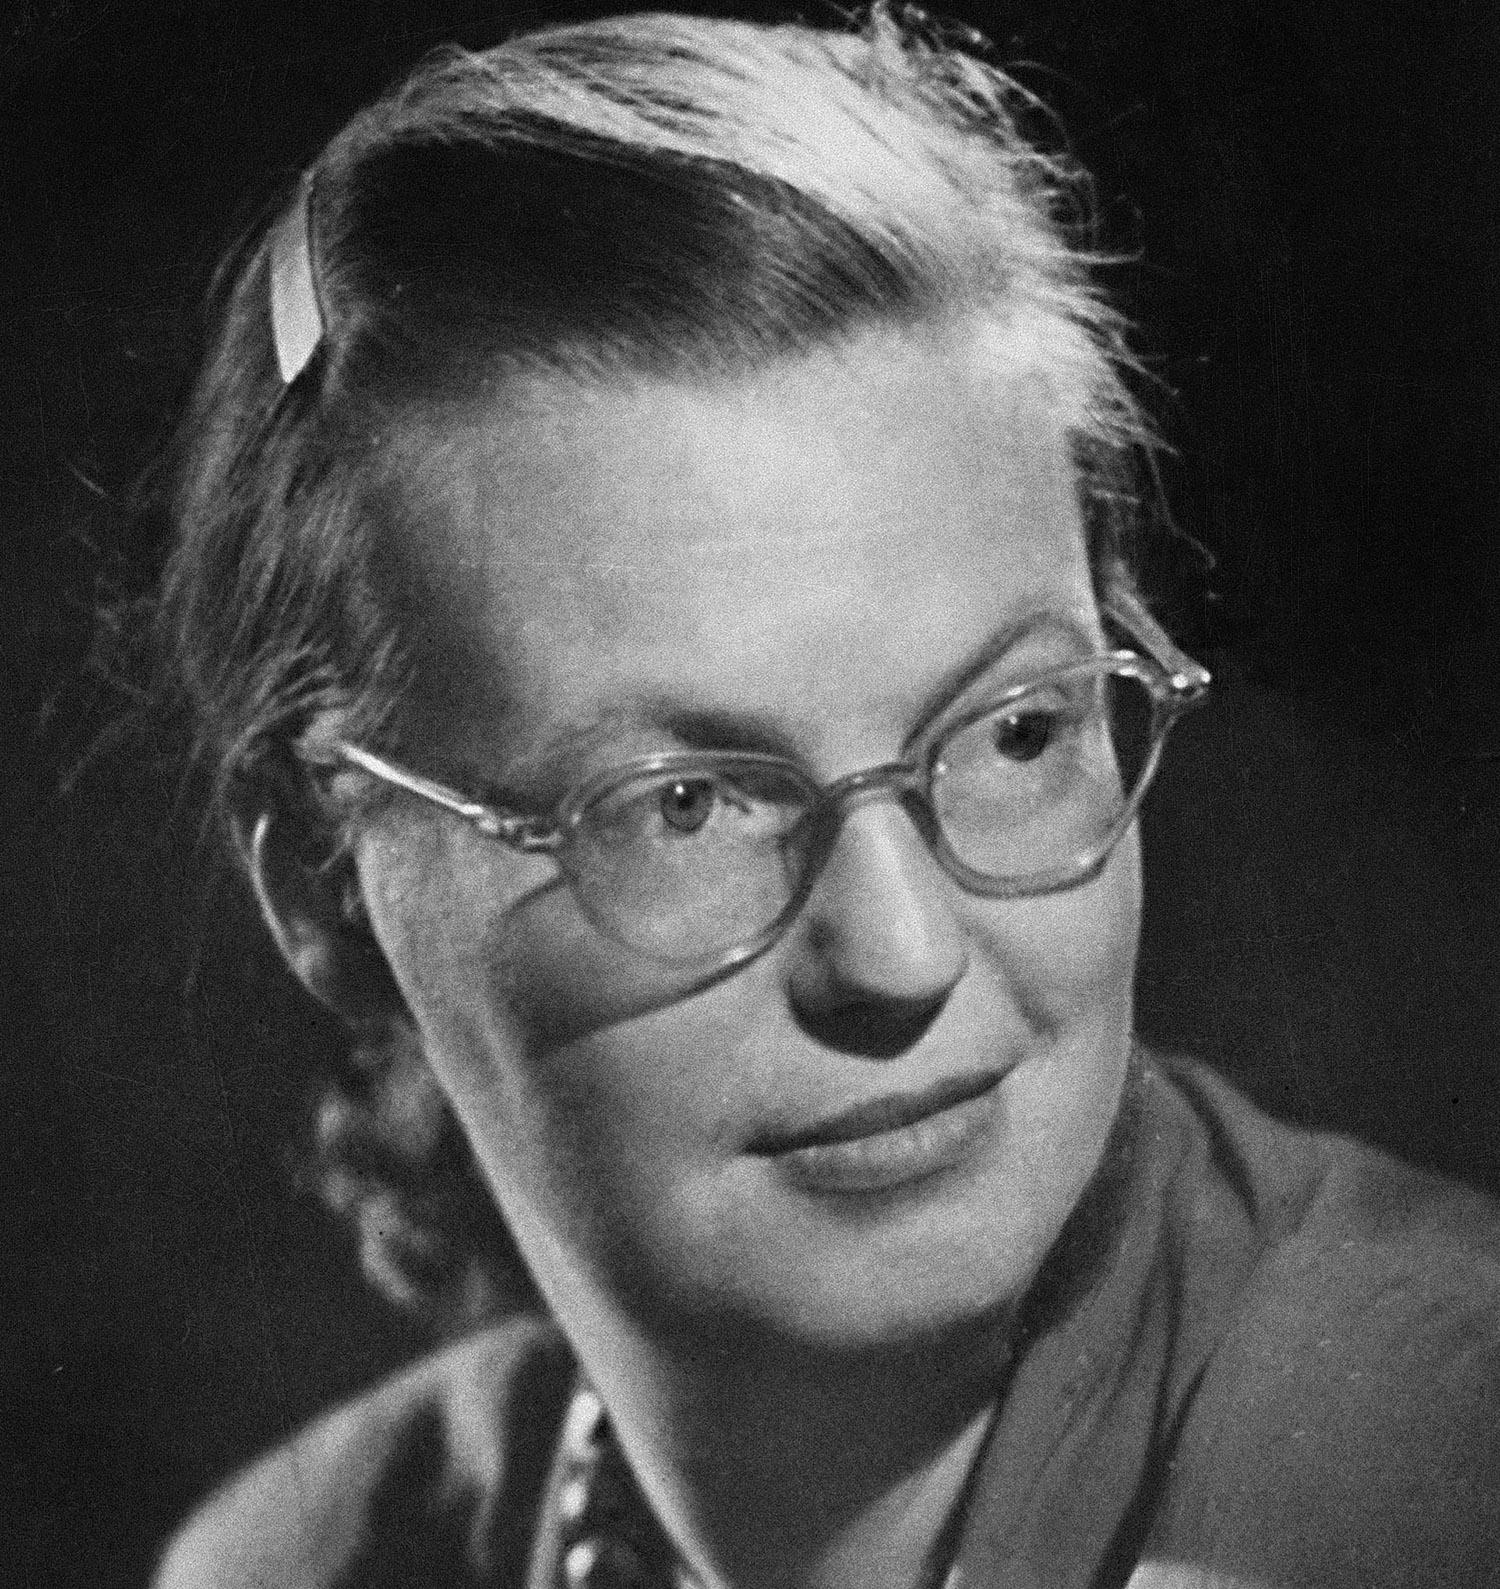 shirley jackson biography essay On biographycom, read about shirley jackson, the 20th century gothic writer known for famed horror tale 'the lottery' and novels like the sundial.